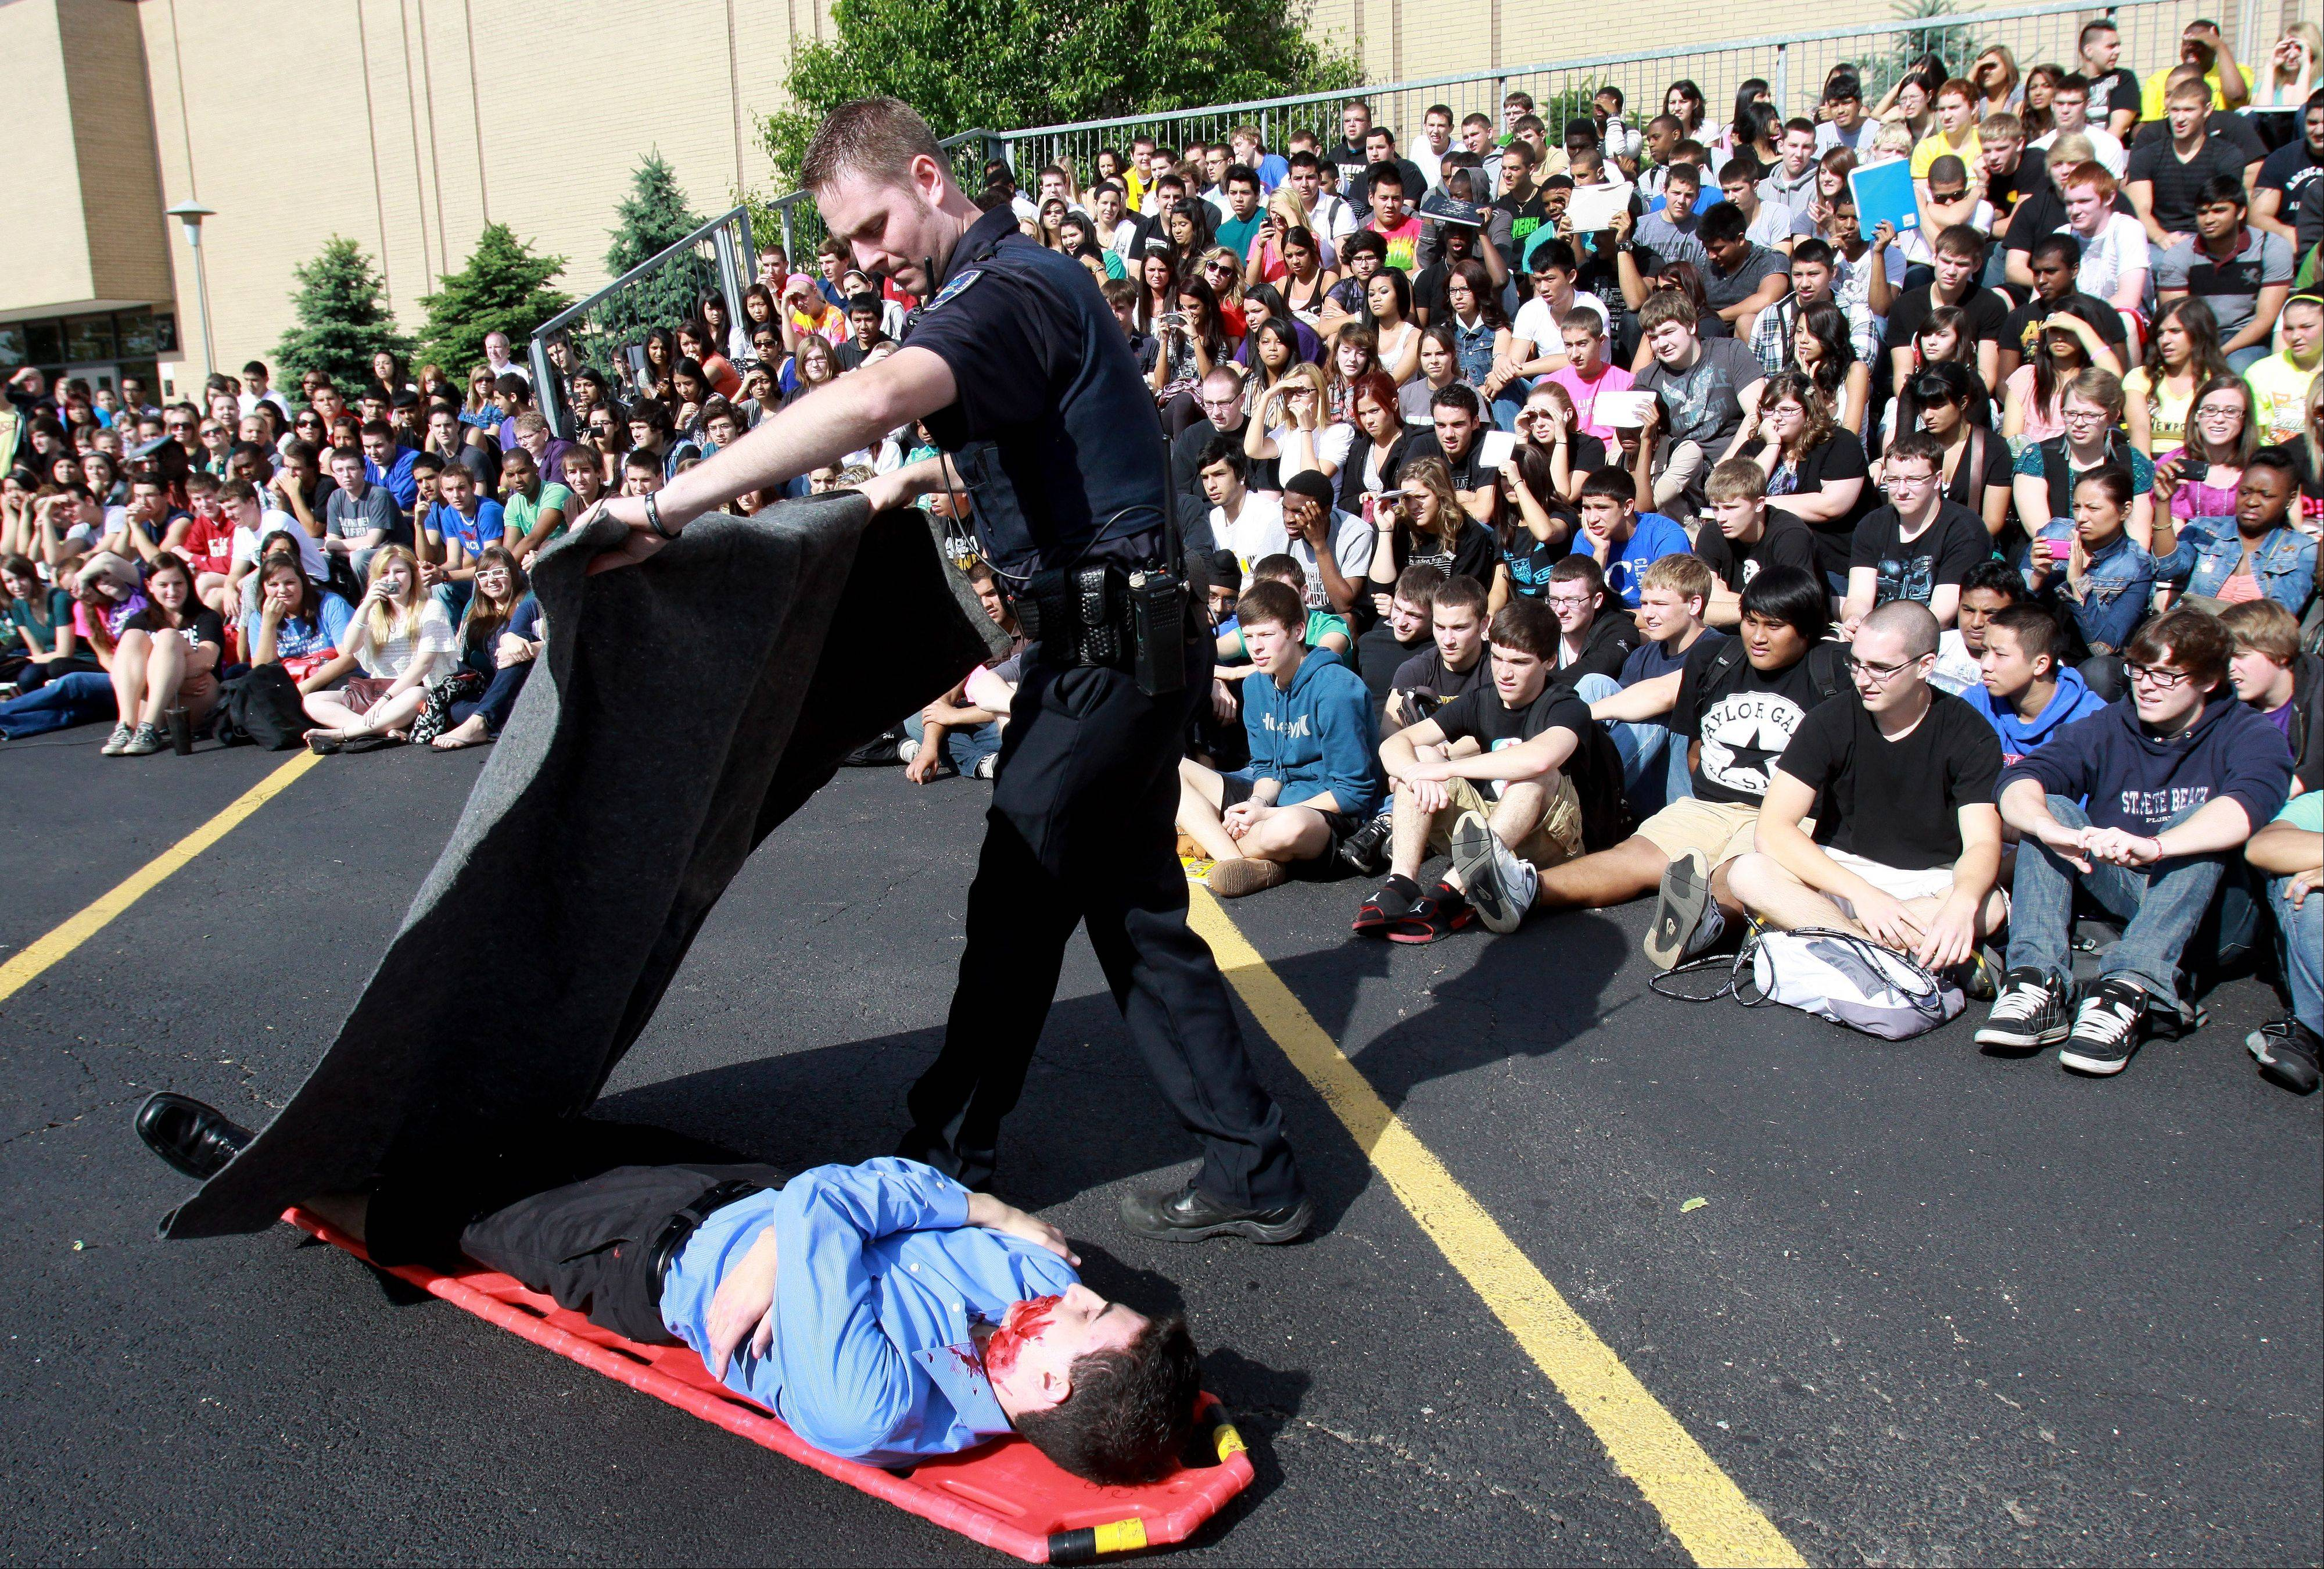 Senior Michael Fagen plays a DOA victim during a fatal DUI crash scene at Glenbard North High School in Carol Stream on Wednesday. The annual event was put on by the Carol Stream Police Department and the Carol Stream Fire Protection District ahead of the school's prom this Saturday.